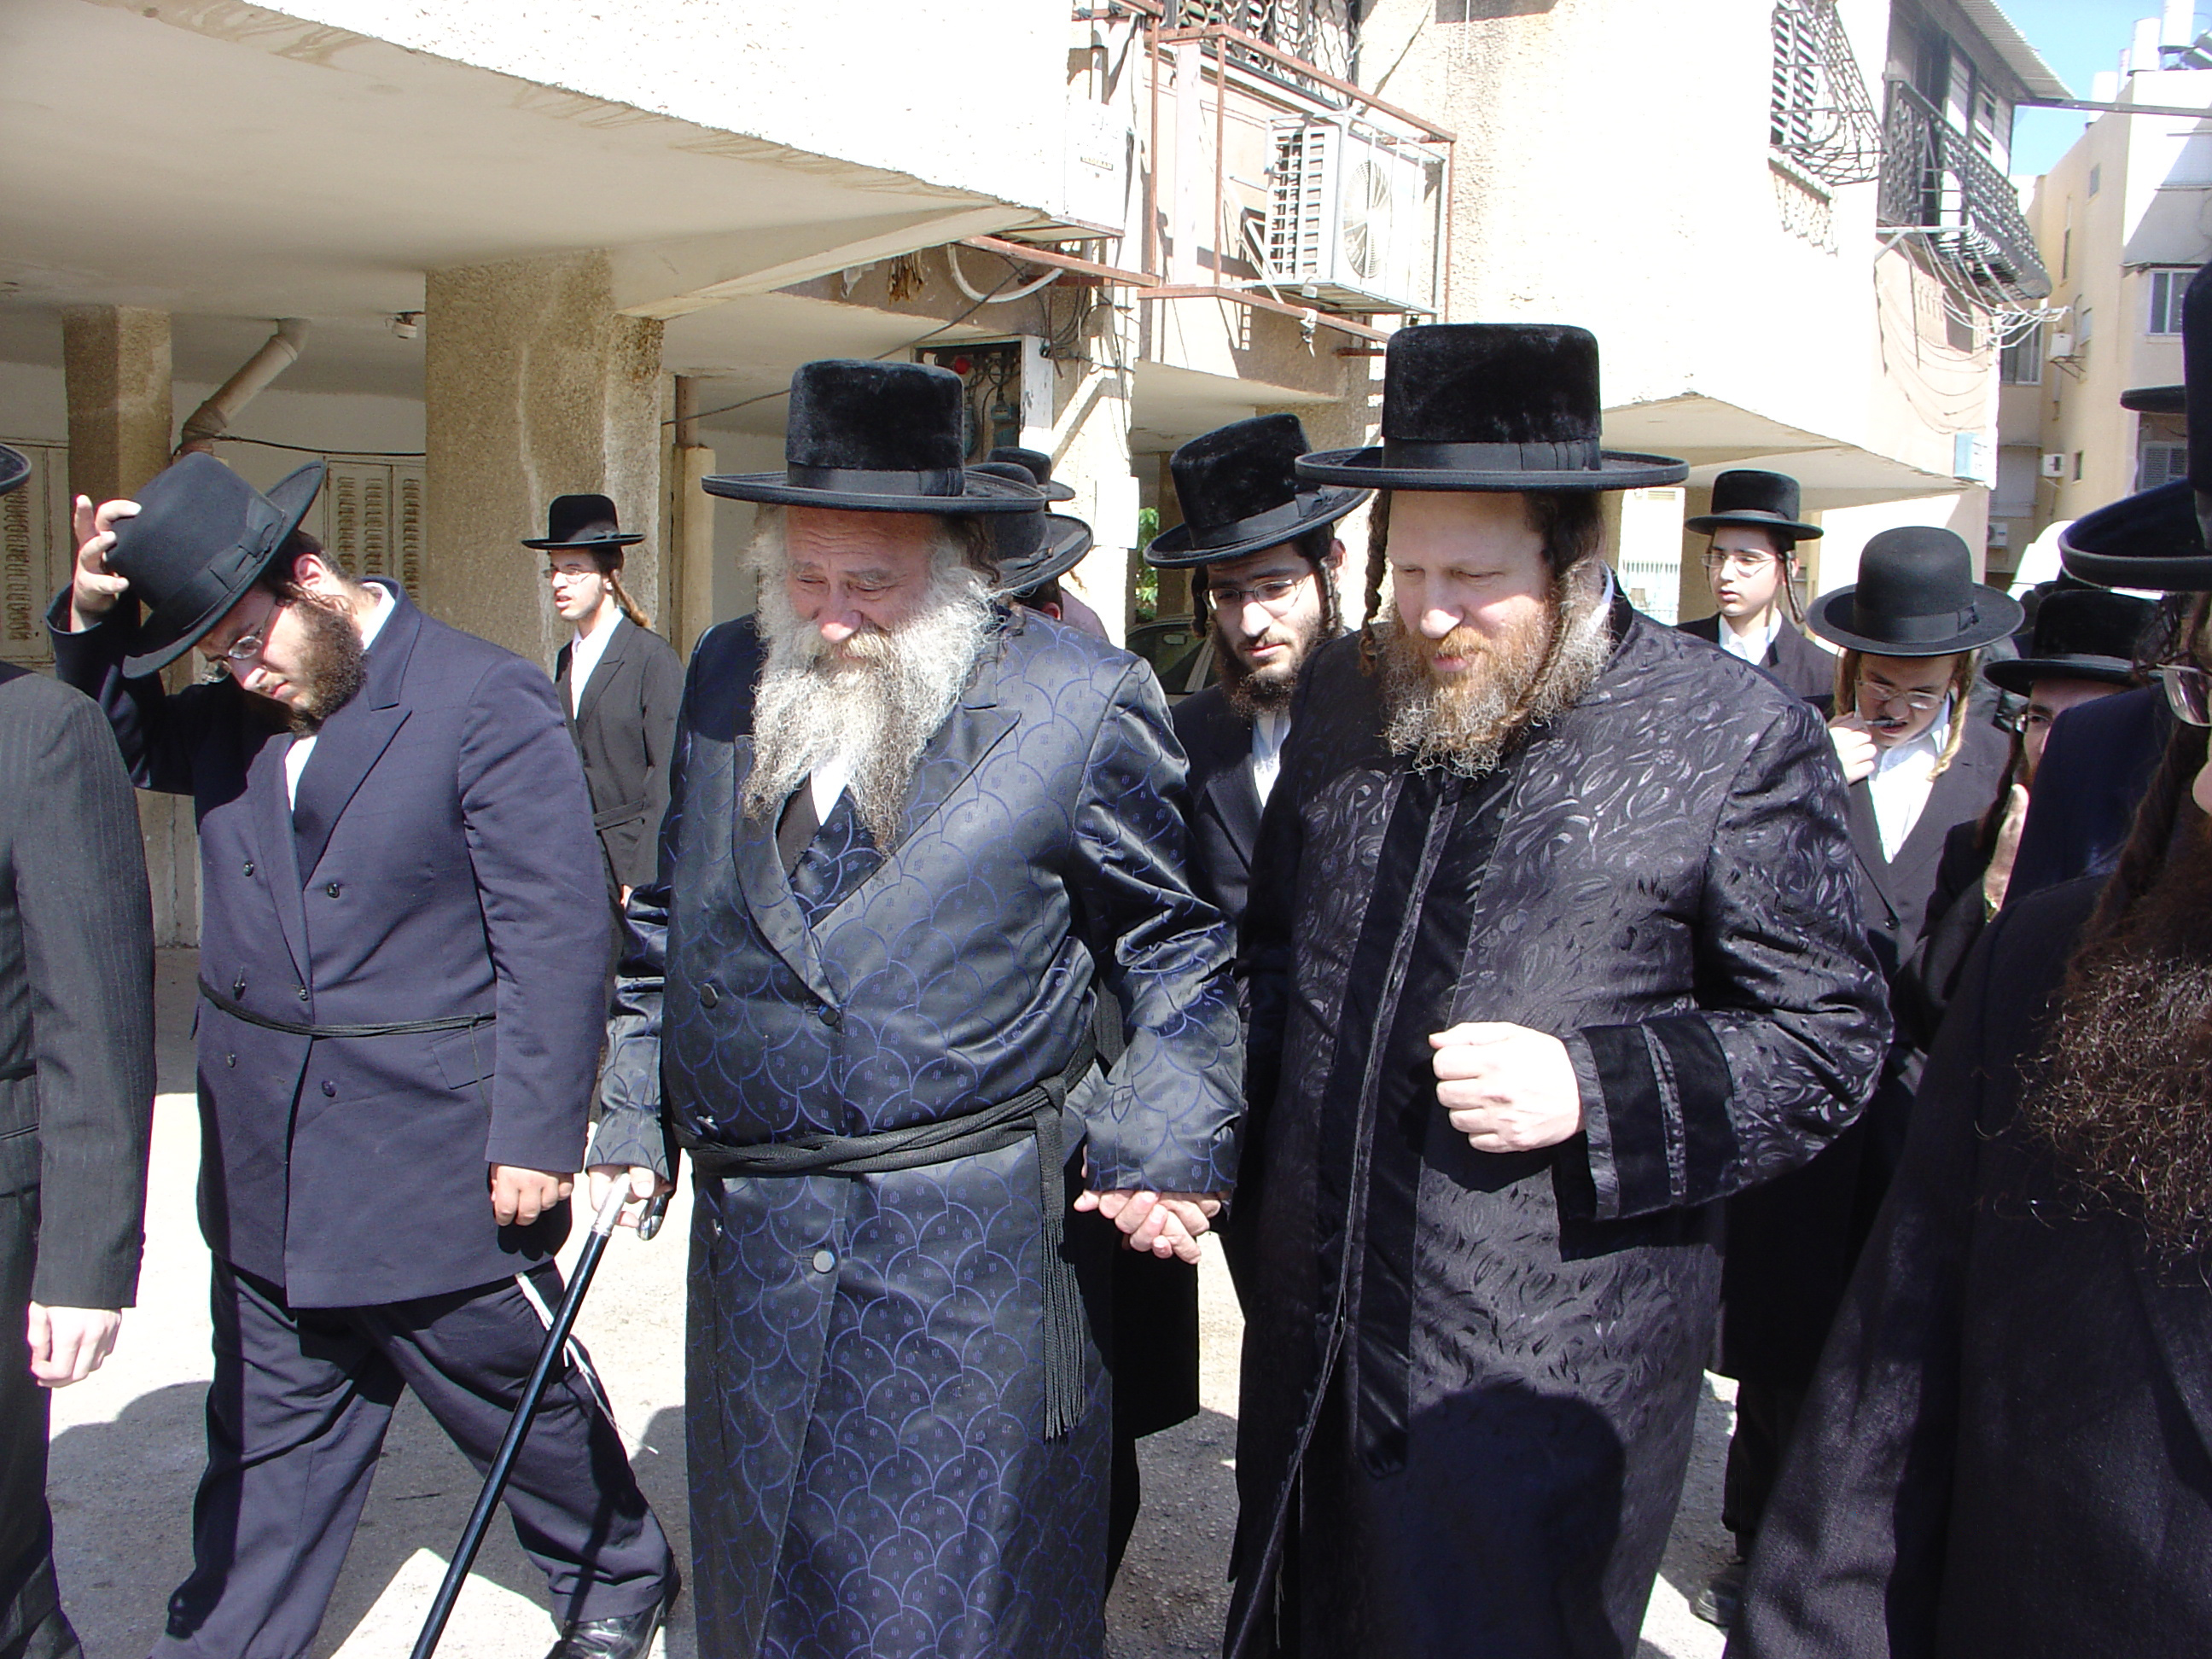 Descendants of the Hasidic rabbinical dynasty